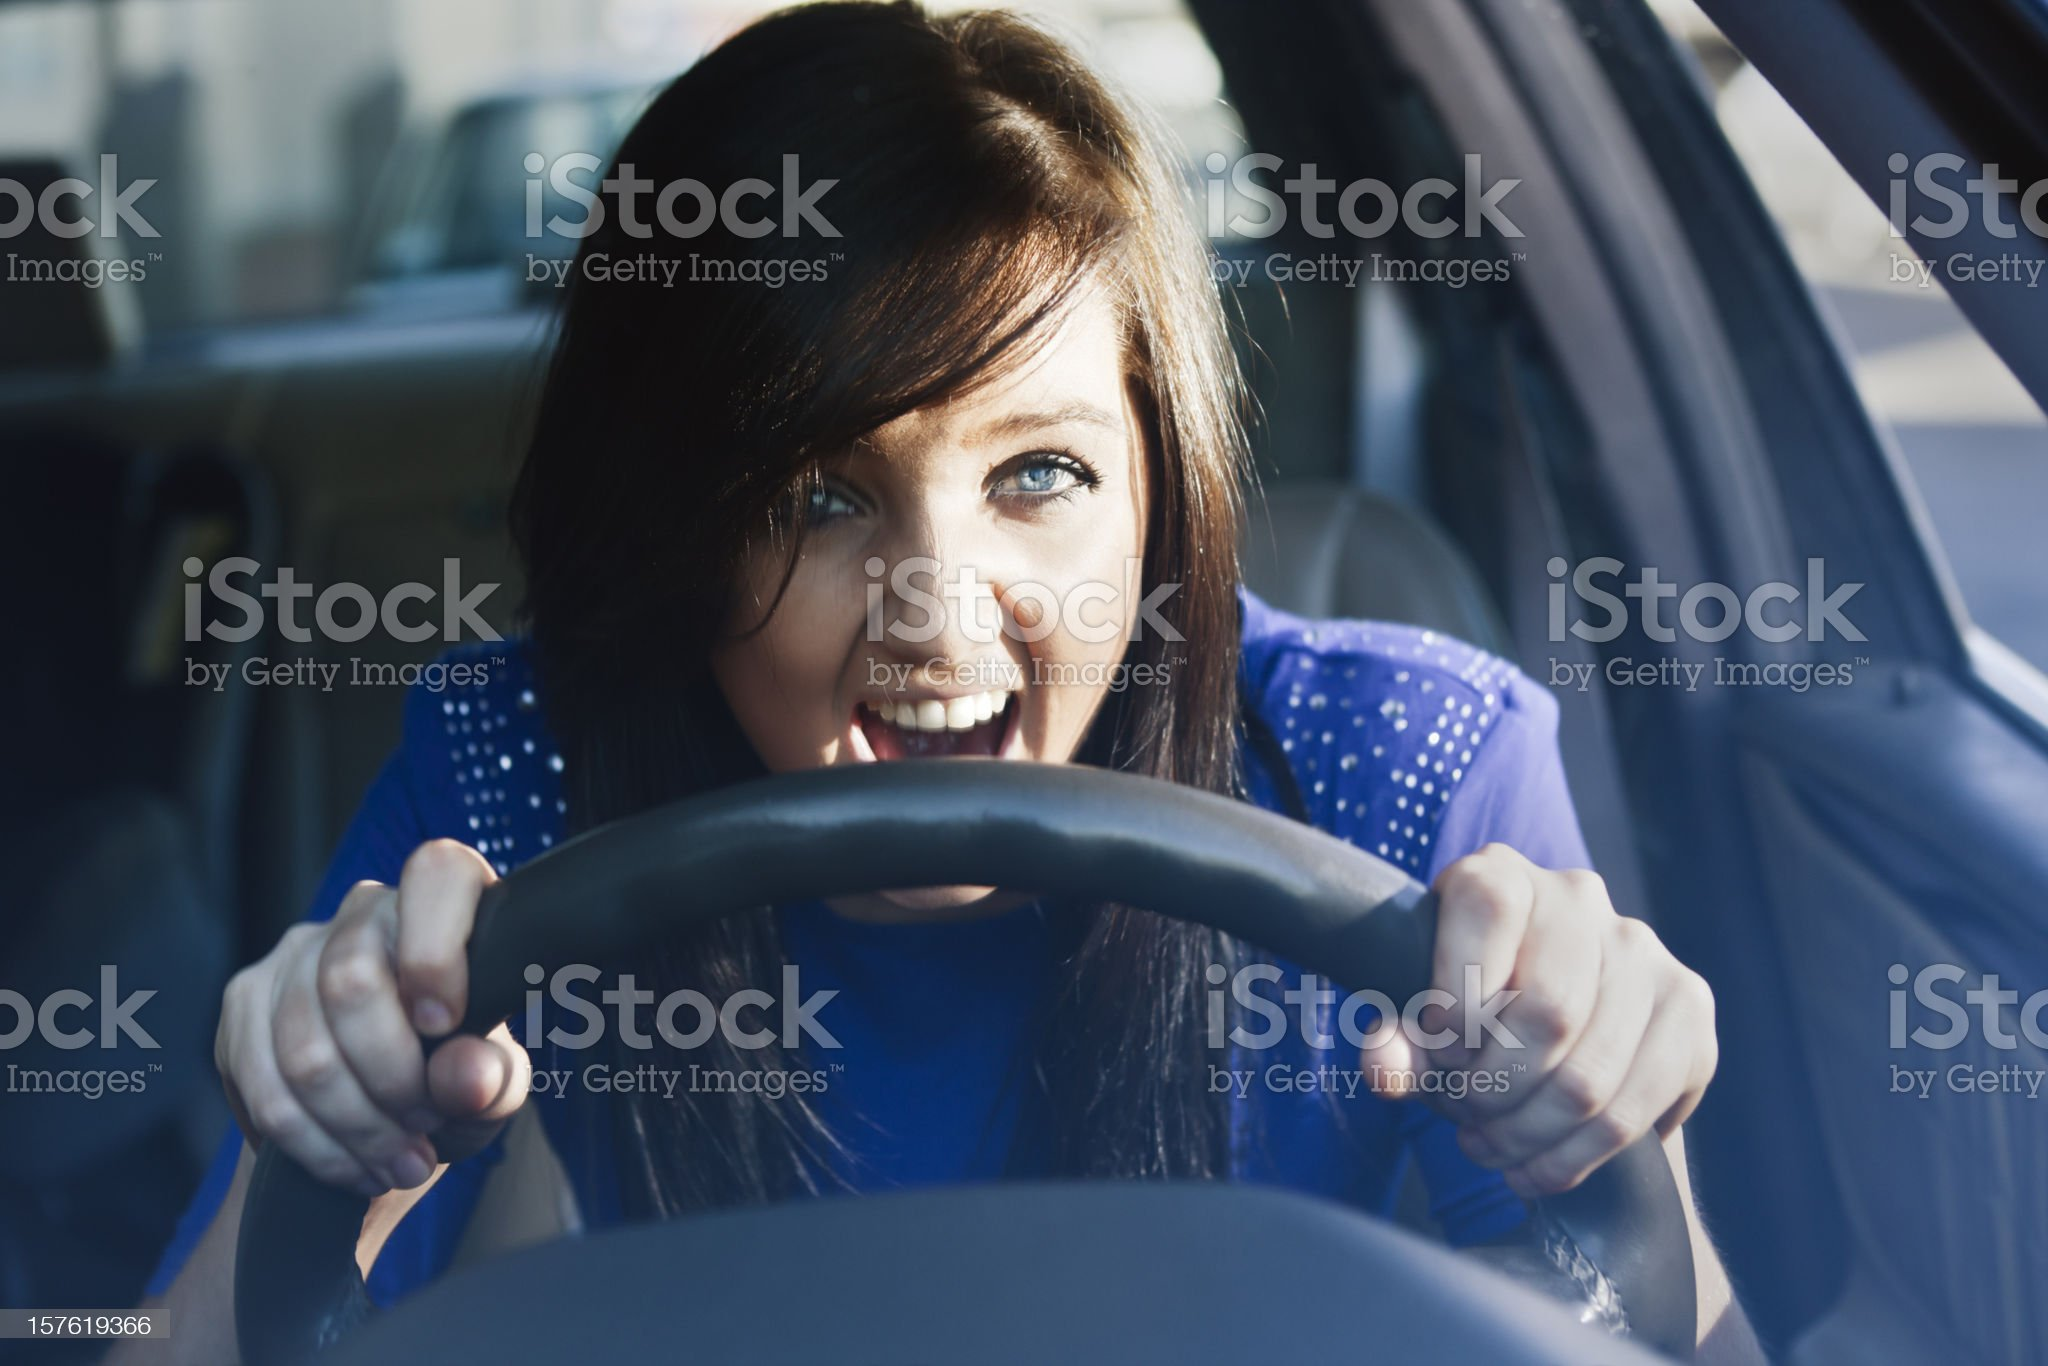 Woman grips steering wheel and yells in fear or frustration royalty-free stock photo